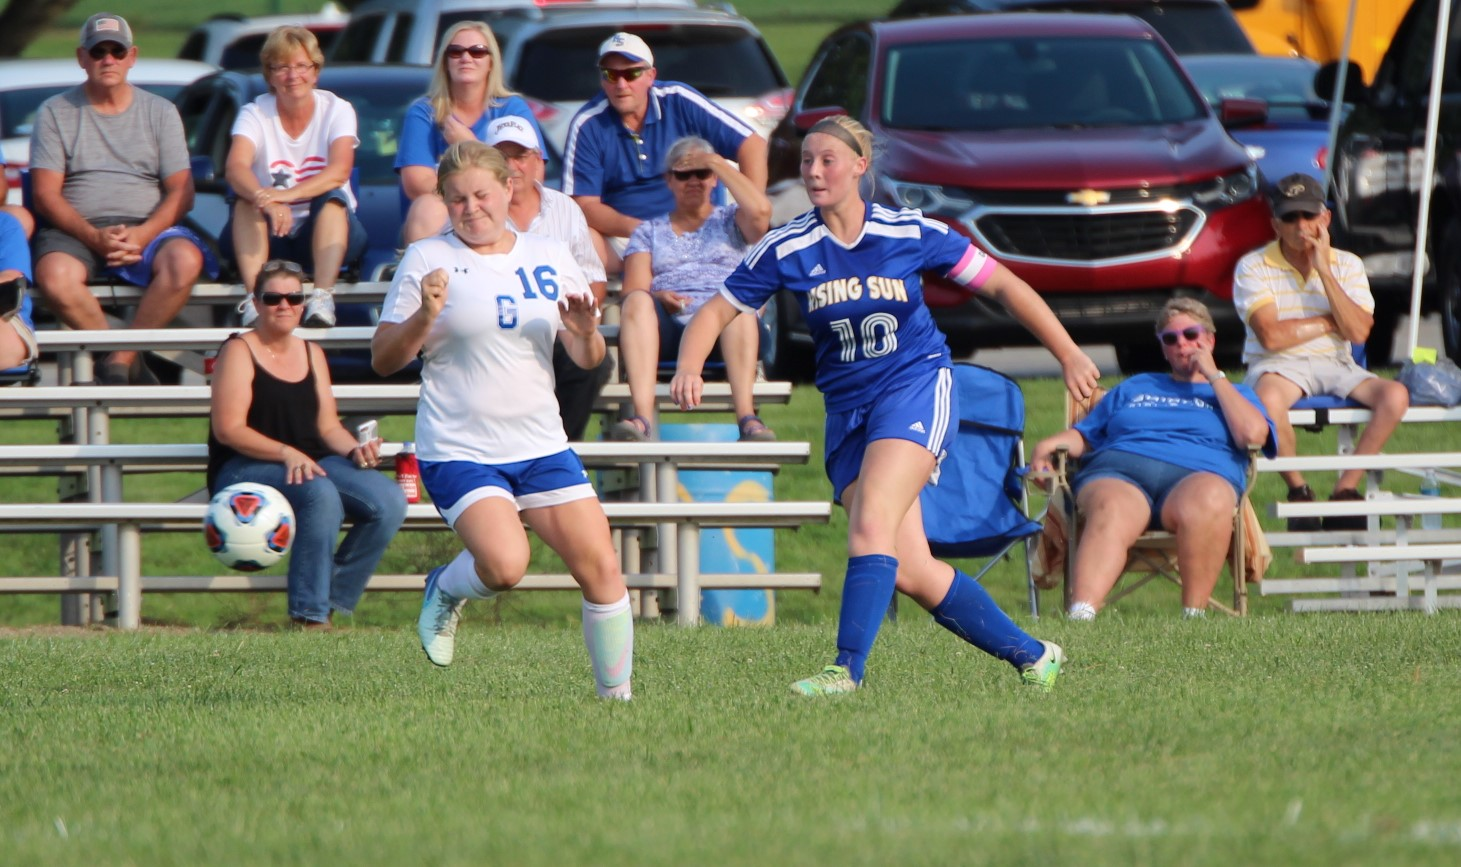 Girls Soccer vs. Greensburg